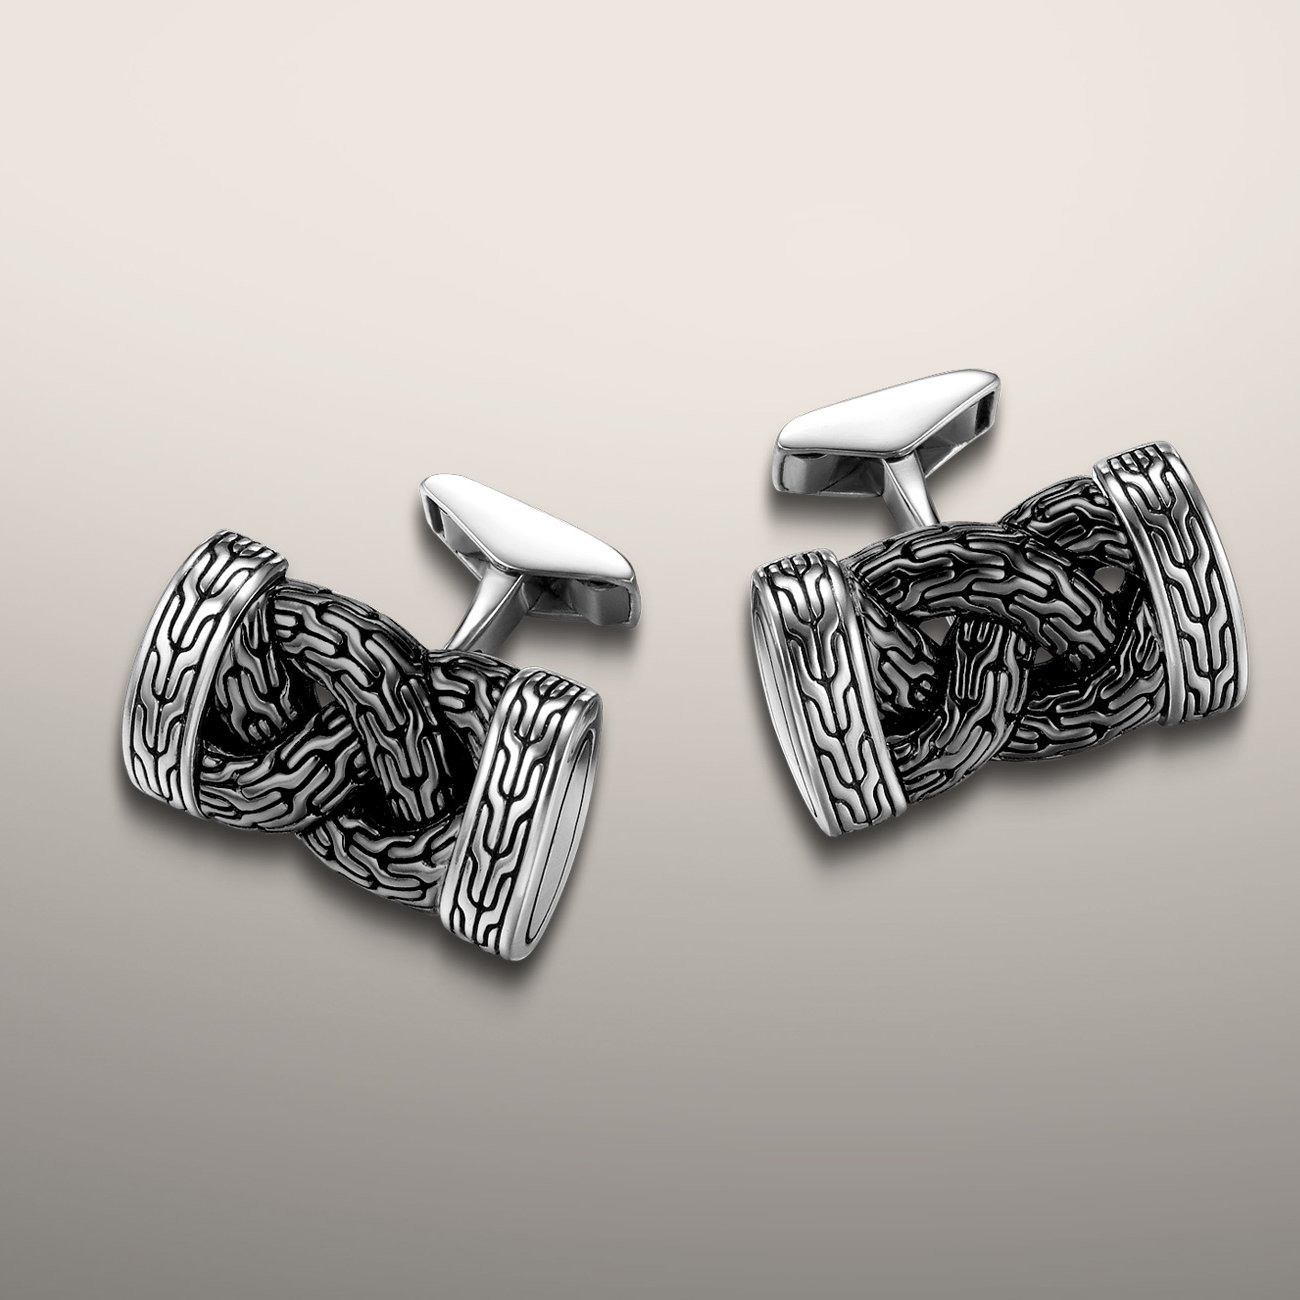 Two tone polished silver and anodized silver cufflinks. John Hardy's signaturebraided classic chainstyling in contrasting colors. The dark and light makes this piece go with every shirt. Dress them up for a work meeting or dress them down for a cool flair to a sports shirt.  $395